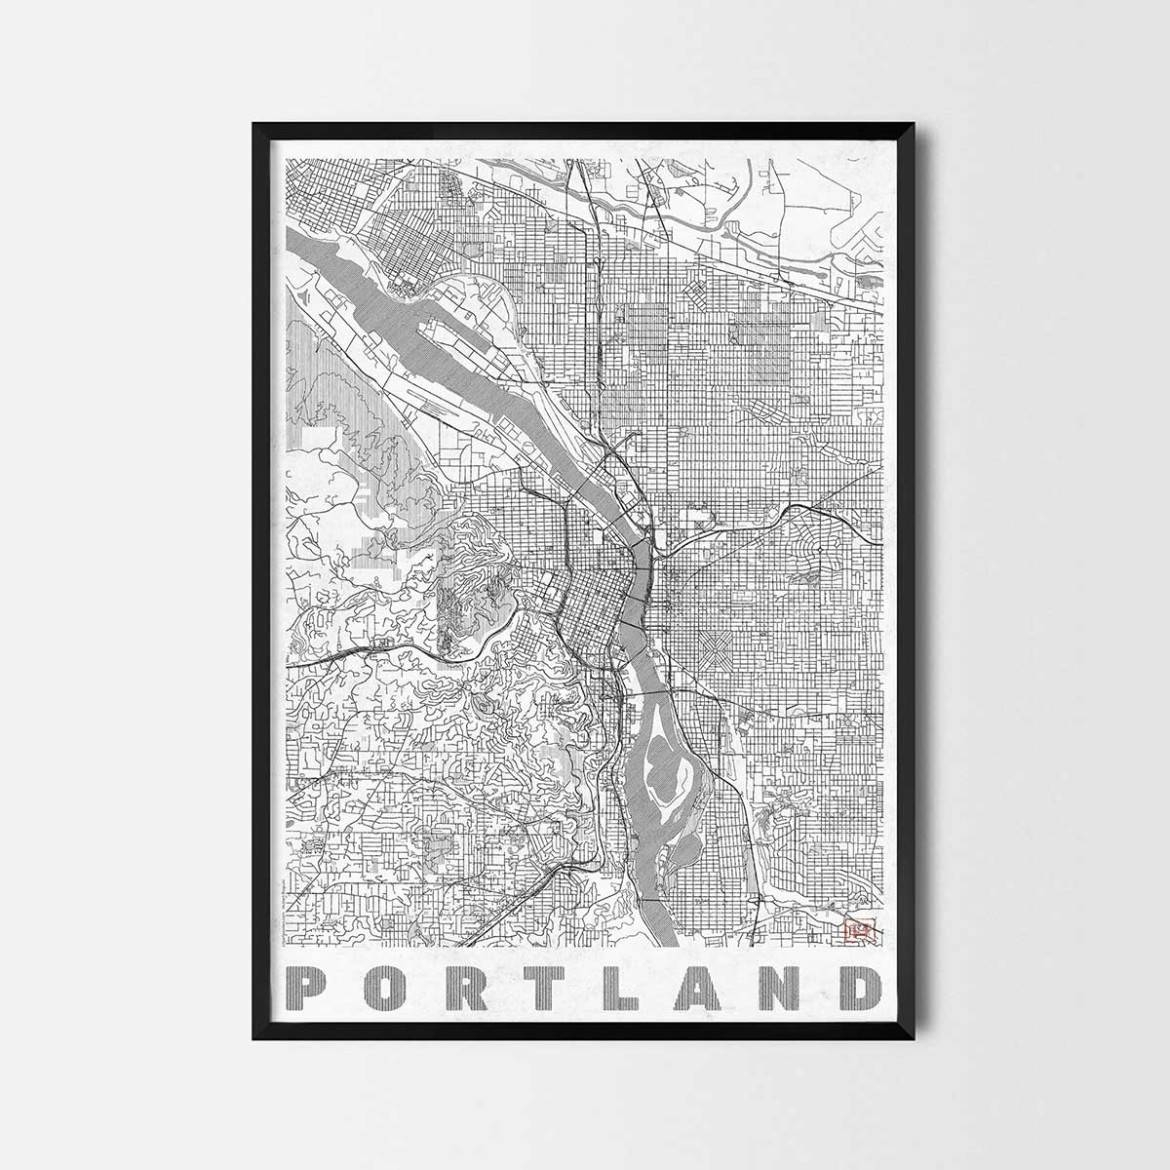 Portland Gift – Map Art Prints And Posters, Home Decor Gifts For Most Current Portland Map Wall Art (View 5 of 20)